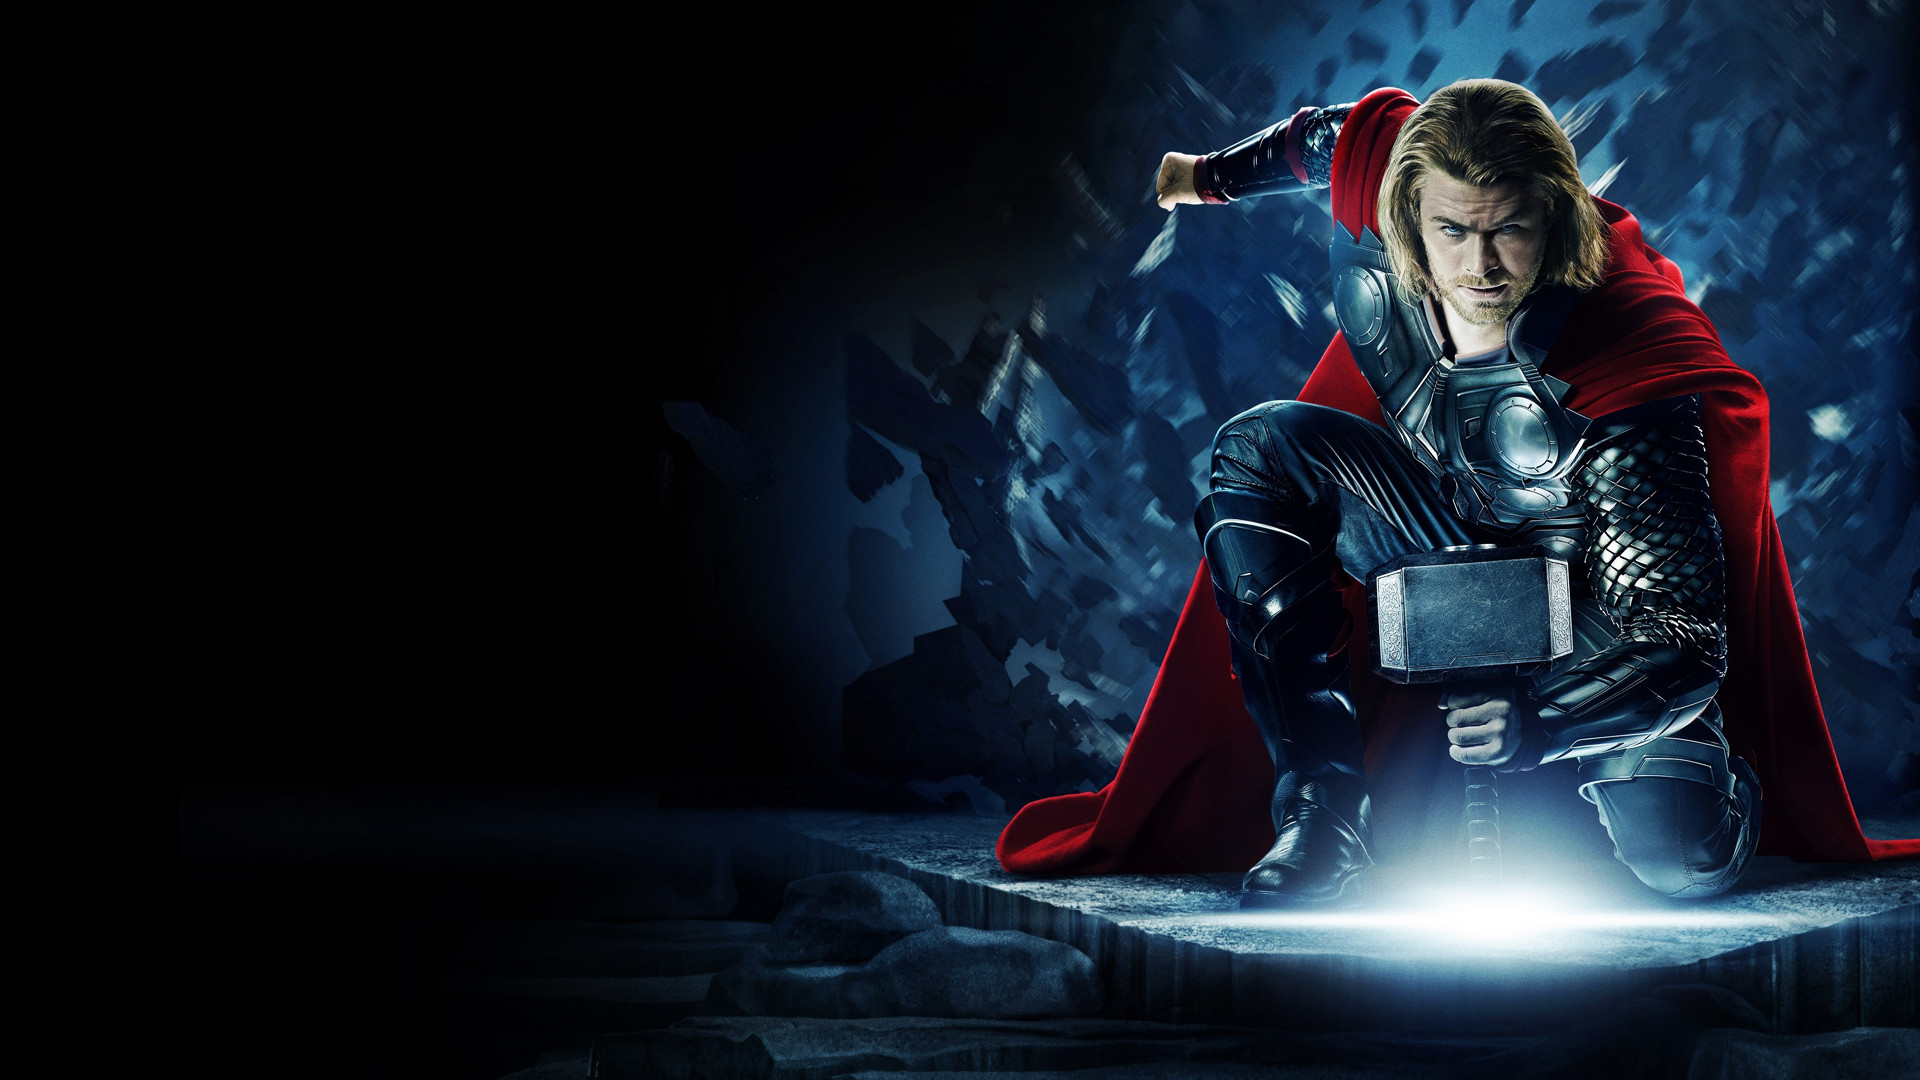 Related wallpapers from Thor Hammer